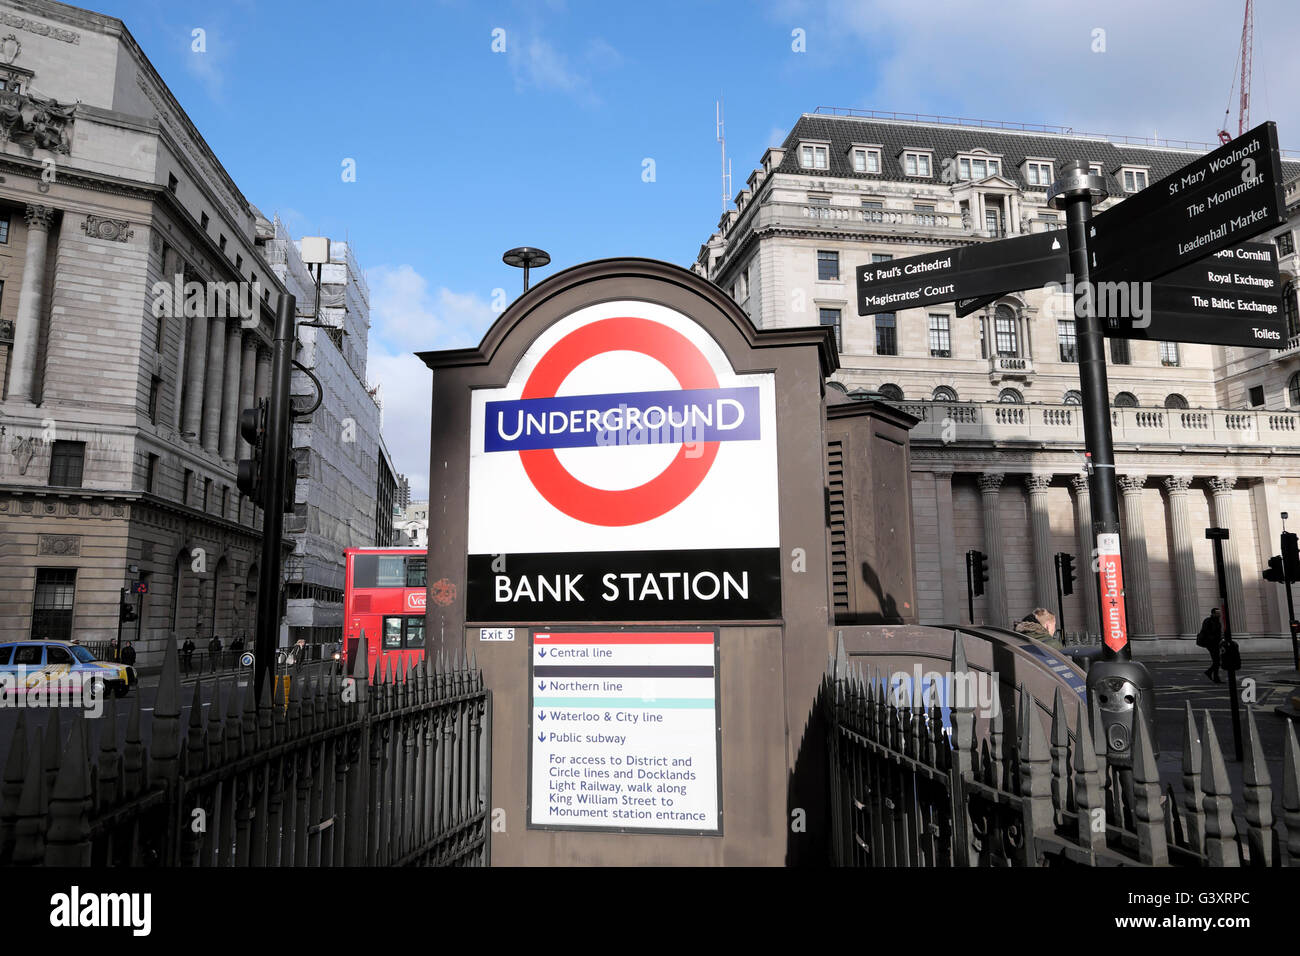 Exterior 'Bank Station'  tube underground station sign on King William Street near  Bank of England  in - Stock Image